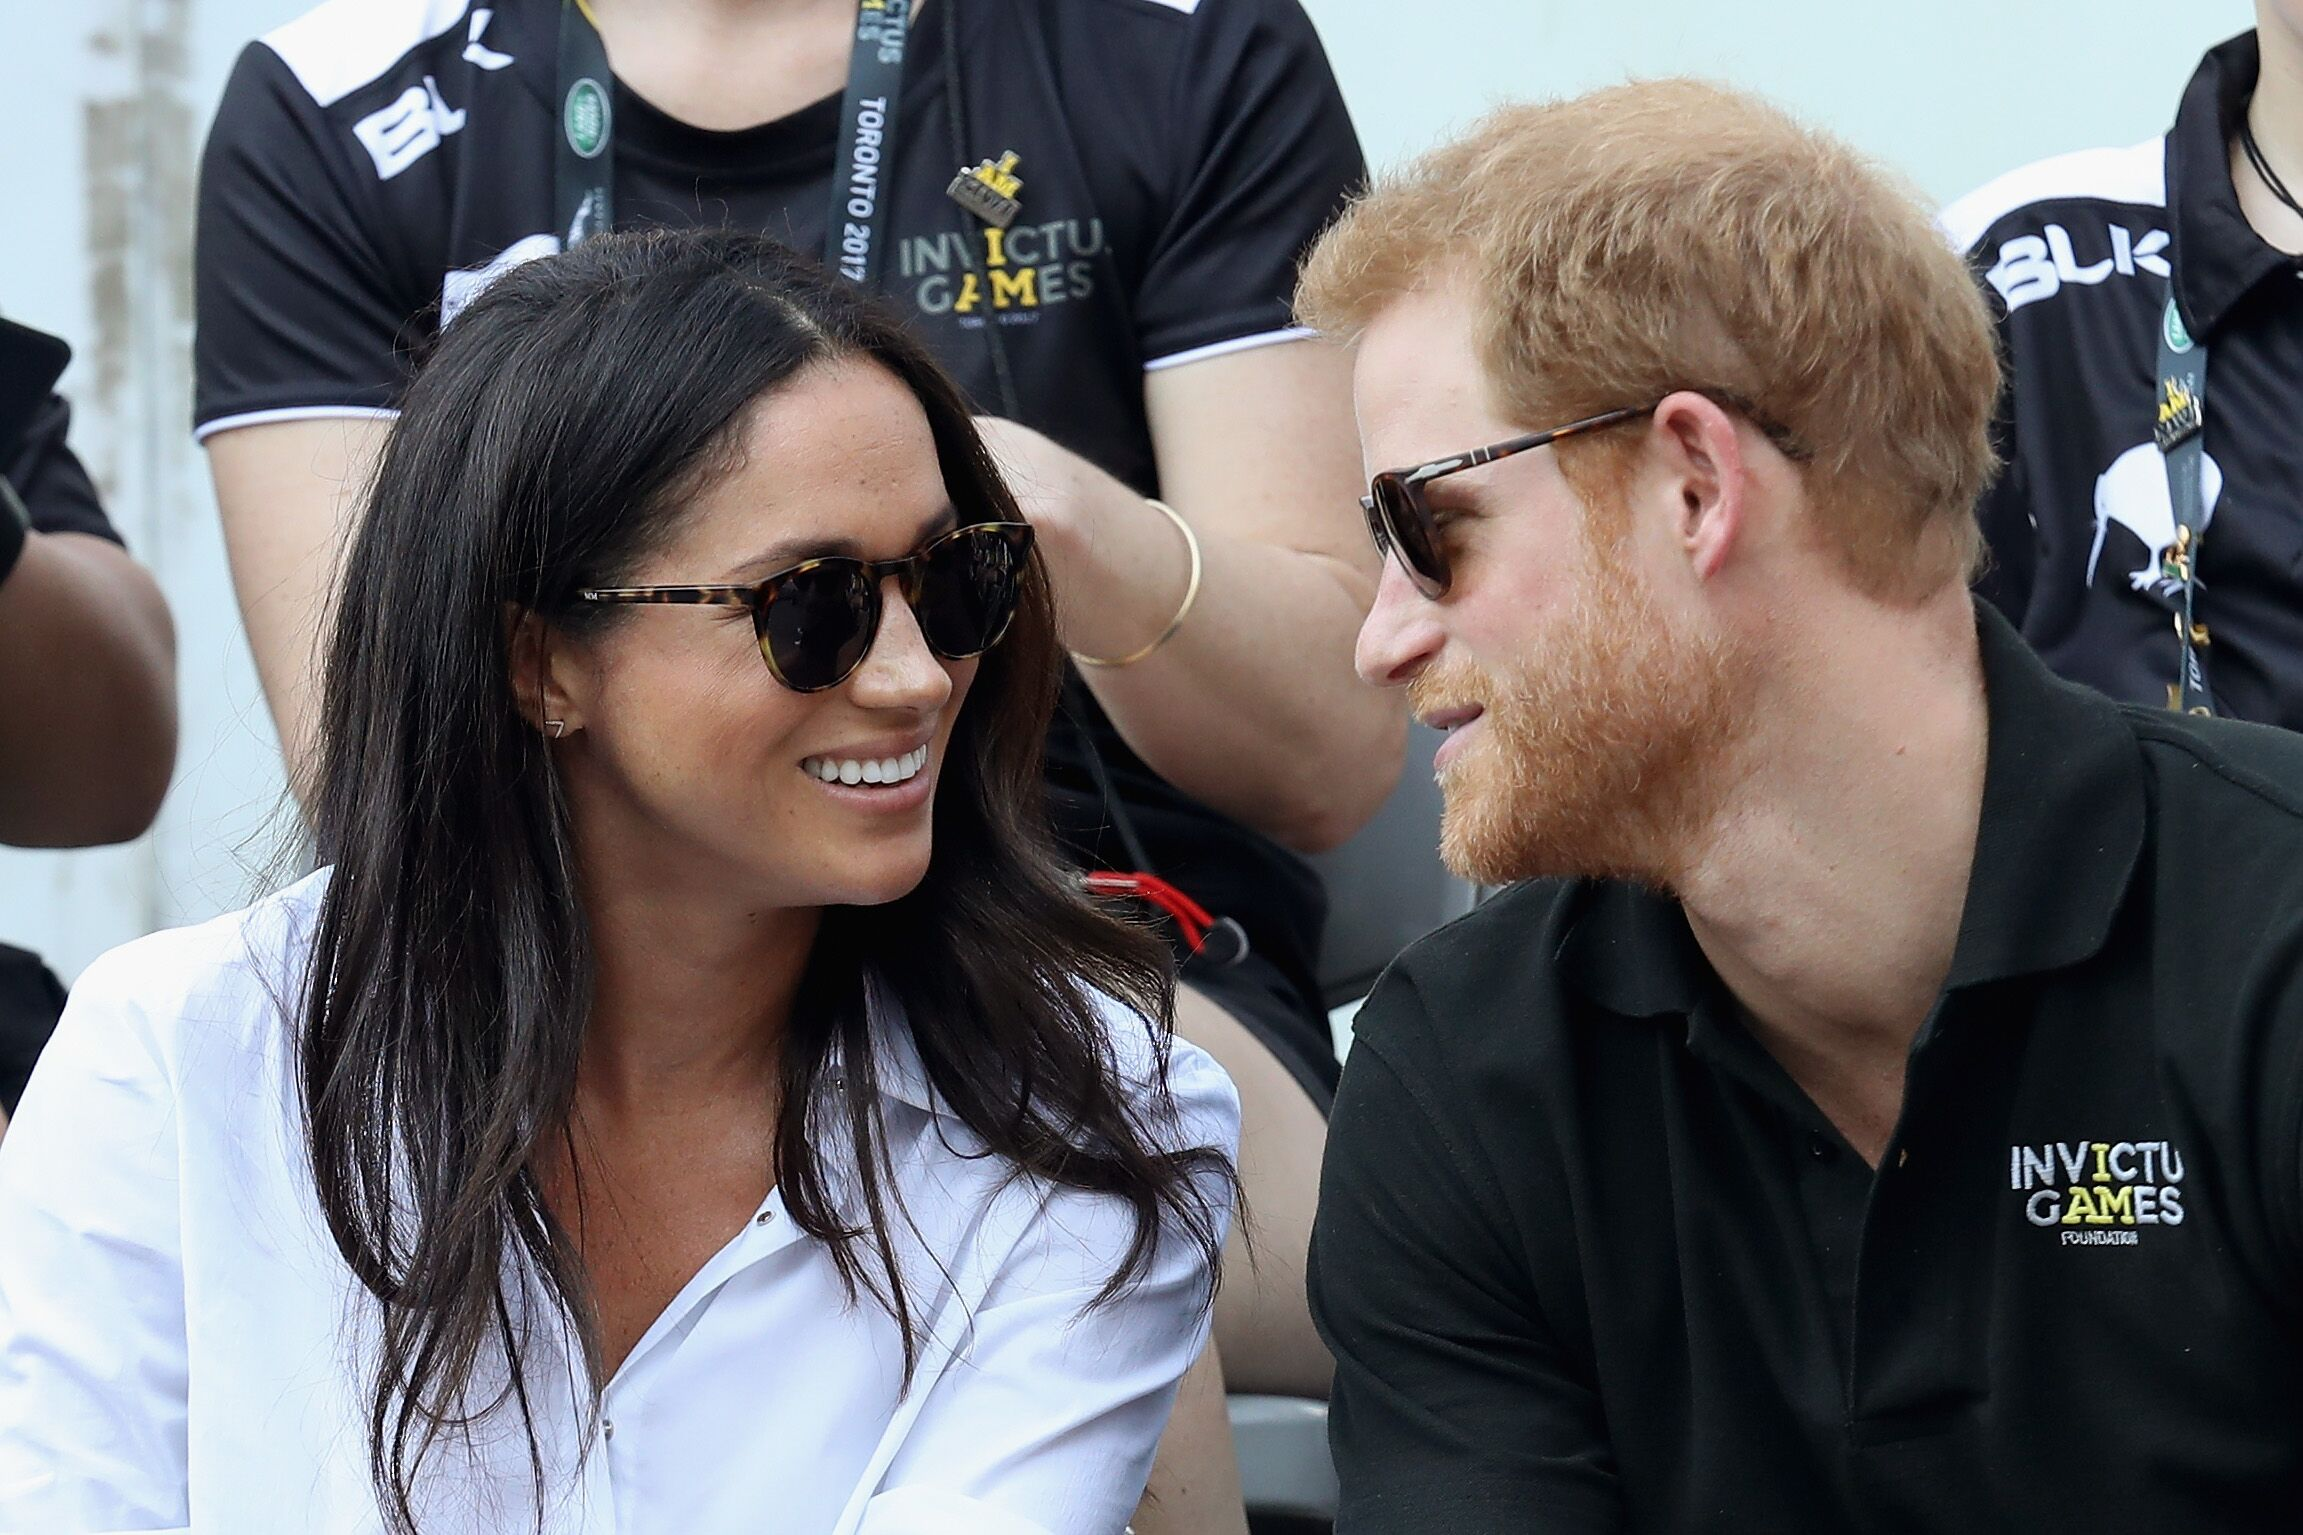 Prince Harry and Meghan Markle at a Wheelchair Tennis match during the Invictus Games on September 25, 2017, in Toronto | Source: Getty Images